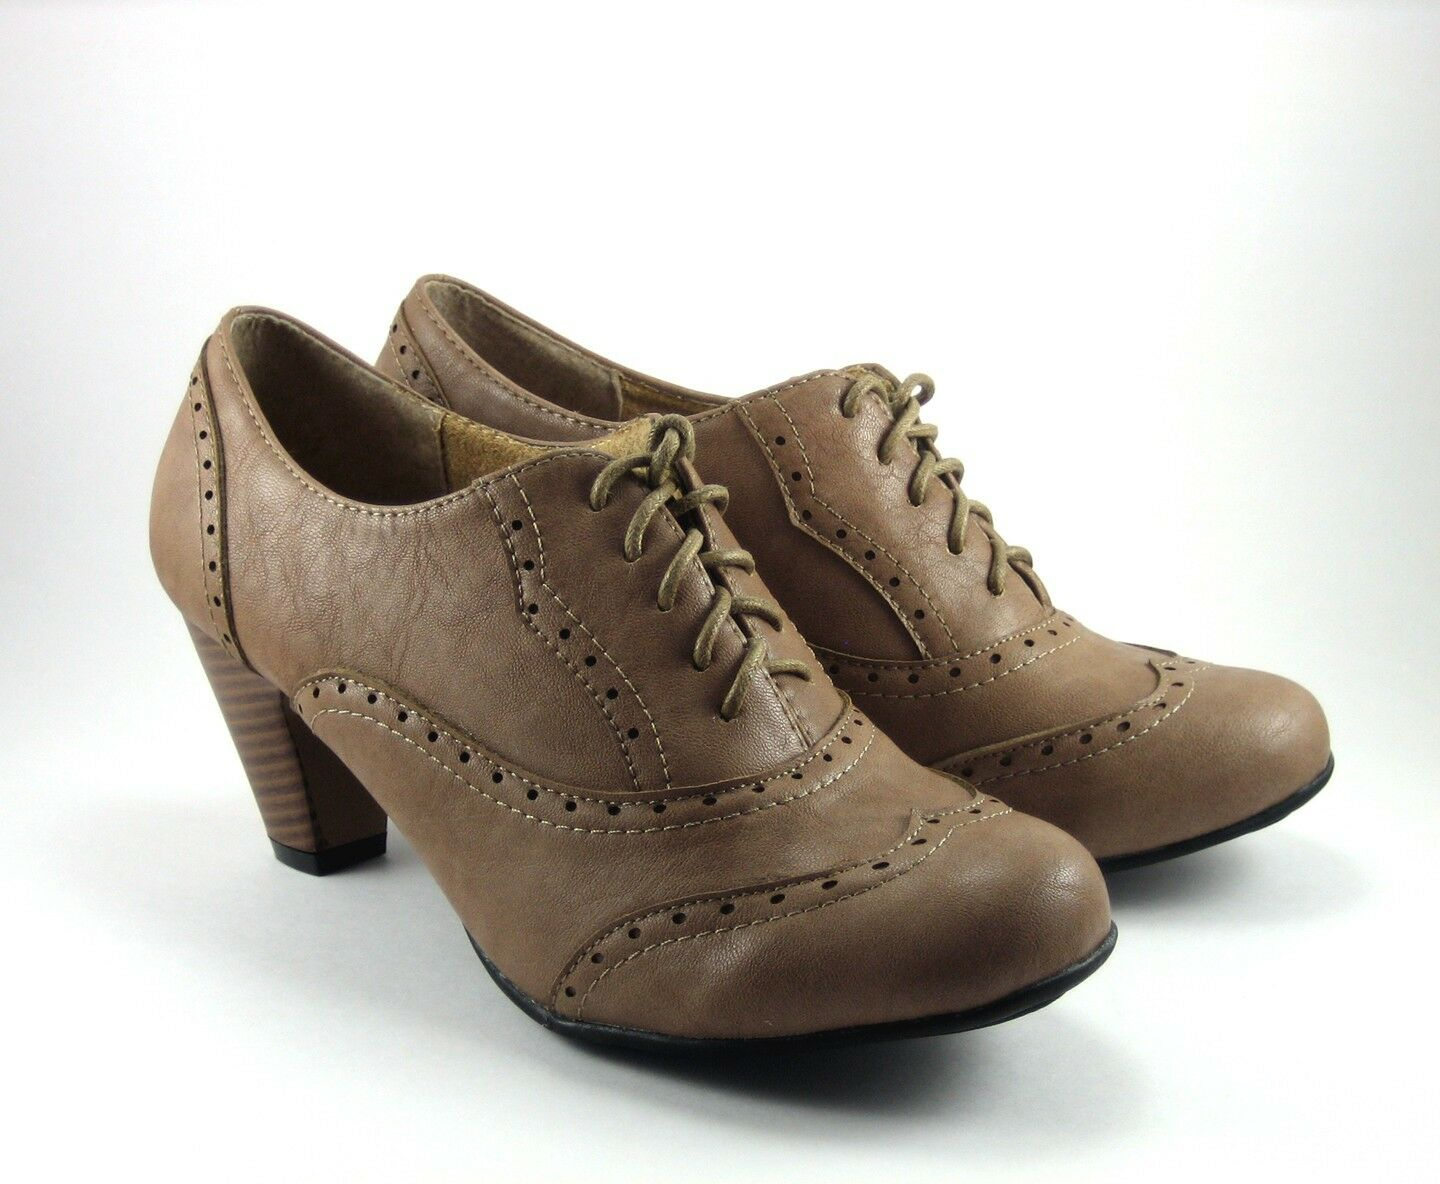 NEW Women Vintage Oxford Faux Leather Retro Lace Up Stacked High Heel Shoe